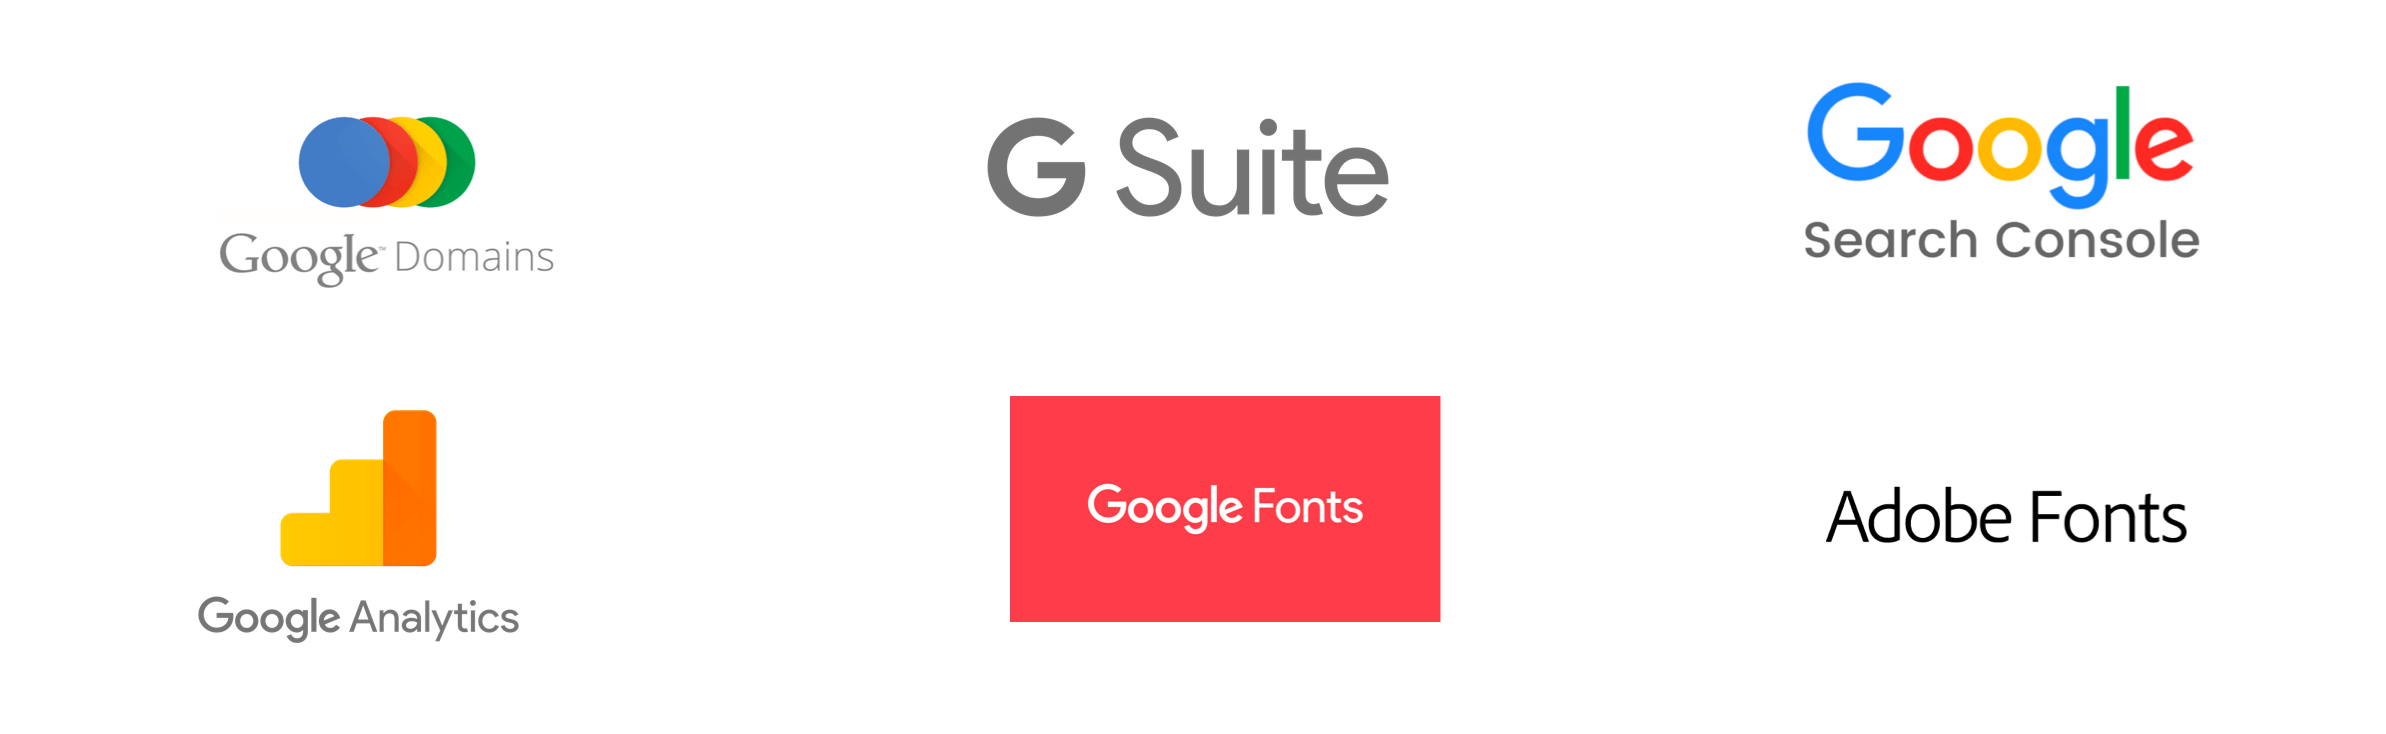 Six logos for website tools, including Google and Adobe